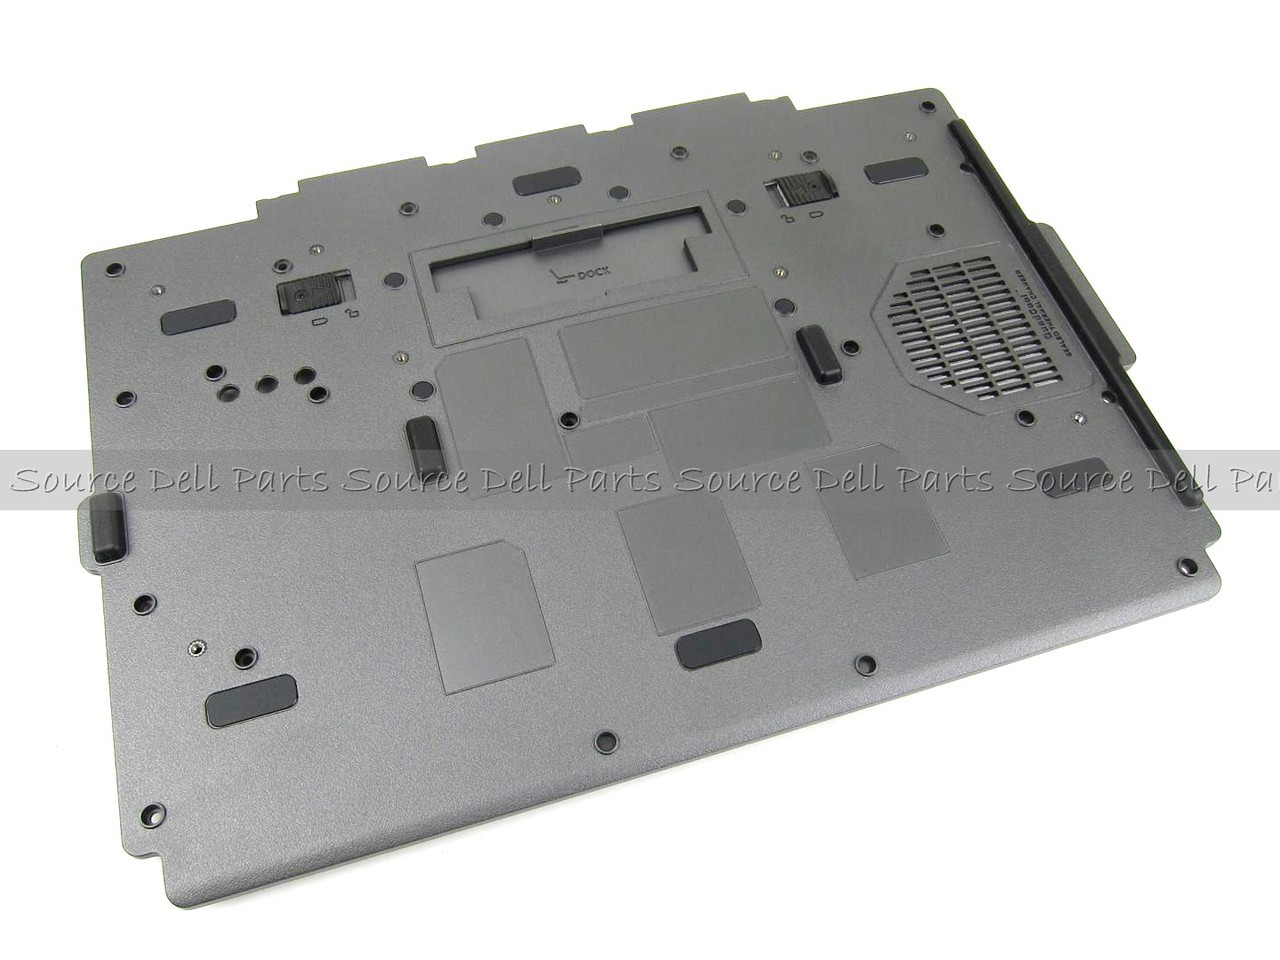 Dell Latitude E6400 XFR Bottom Base Access Panel Door - U903K